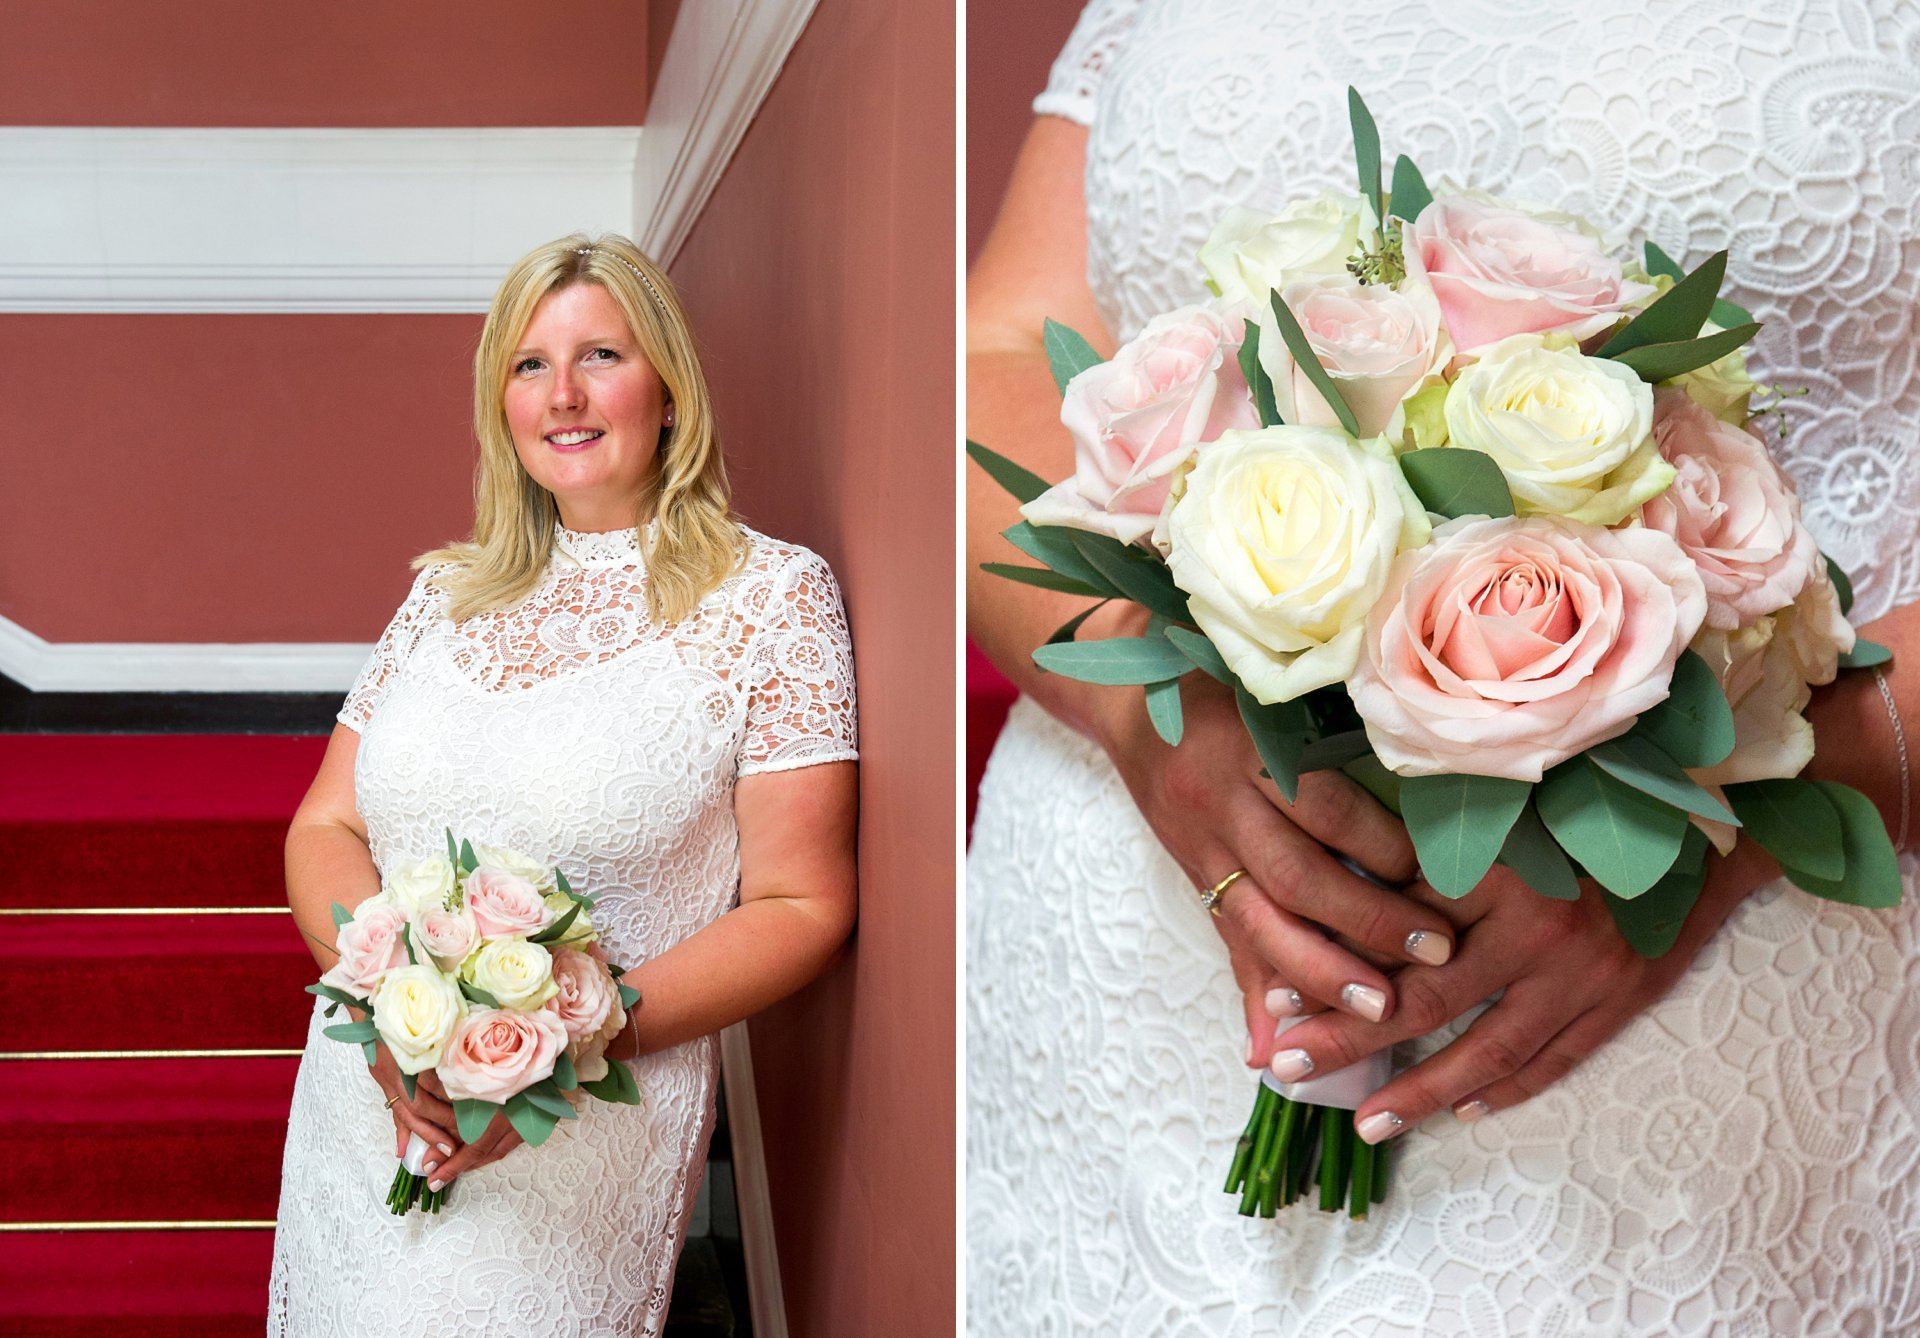 A Chelsea Register Office bride in white lace shift dress and pale pink and cream rose bouquet just before her Chelsea civil marriage ceremony